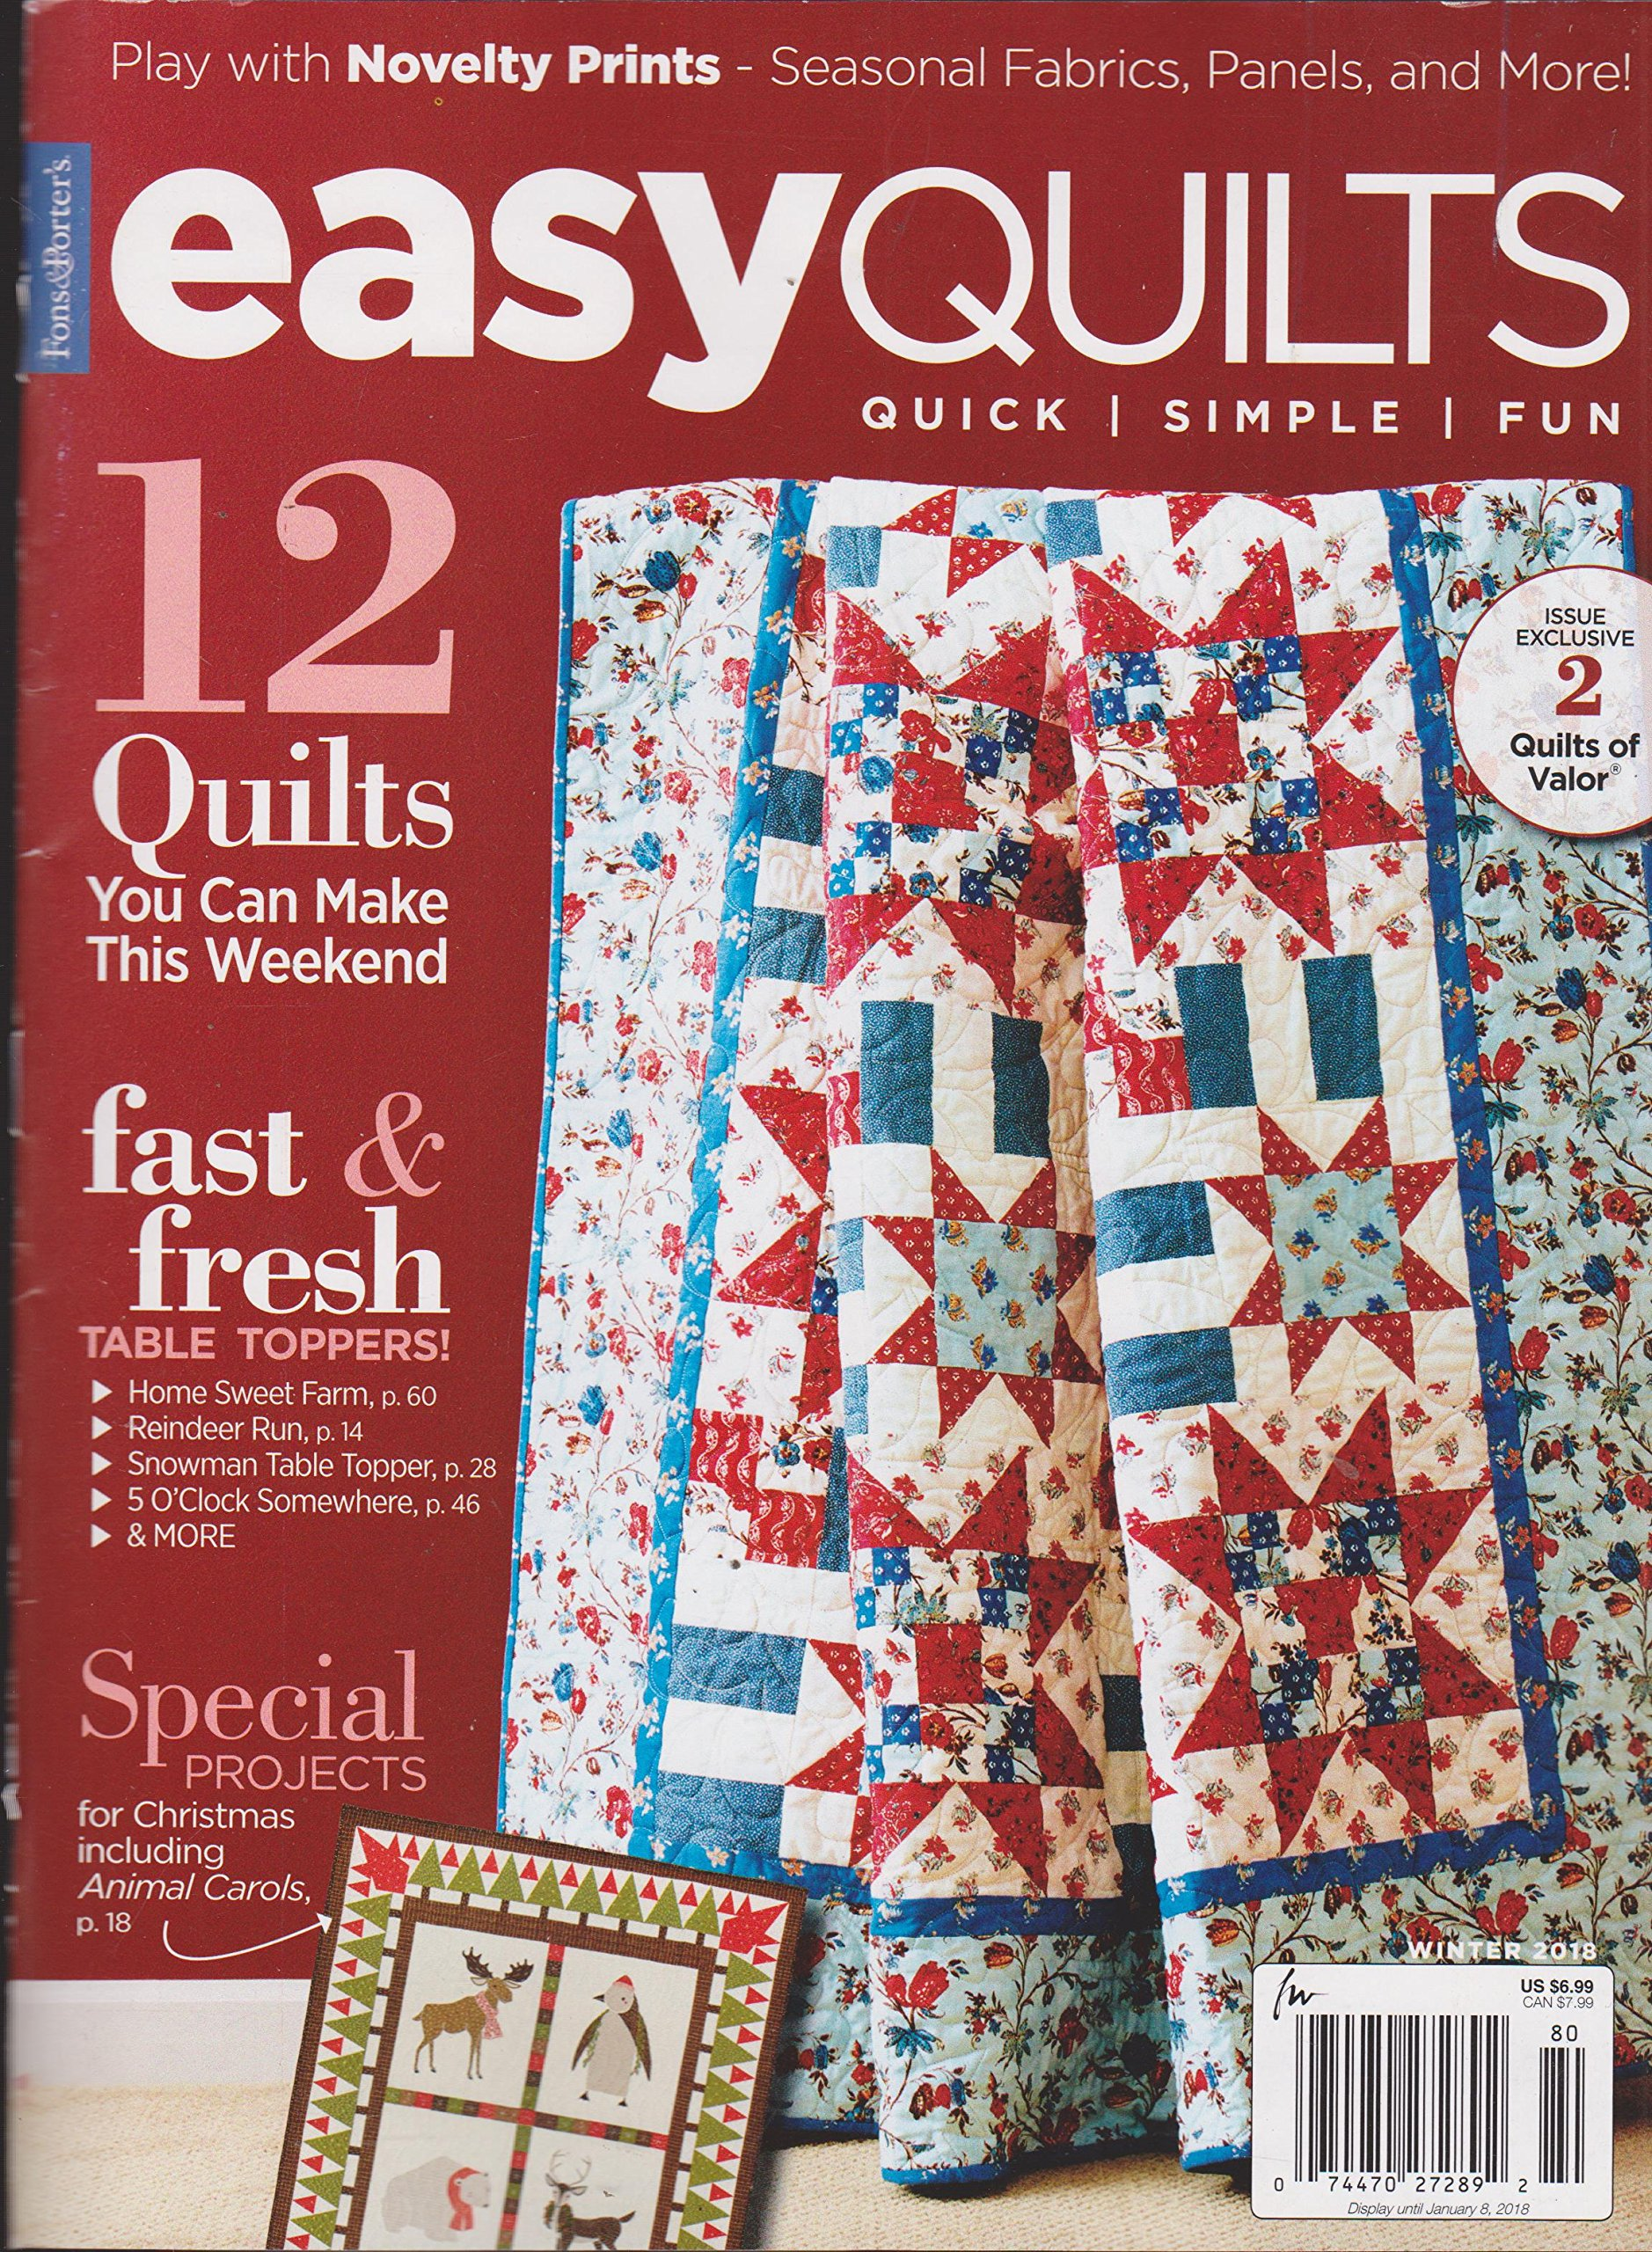 Download Fons & Porter's Easy Quilts Magazine Winter 2018 12 Quick Simple Fun ebook